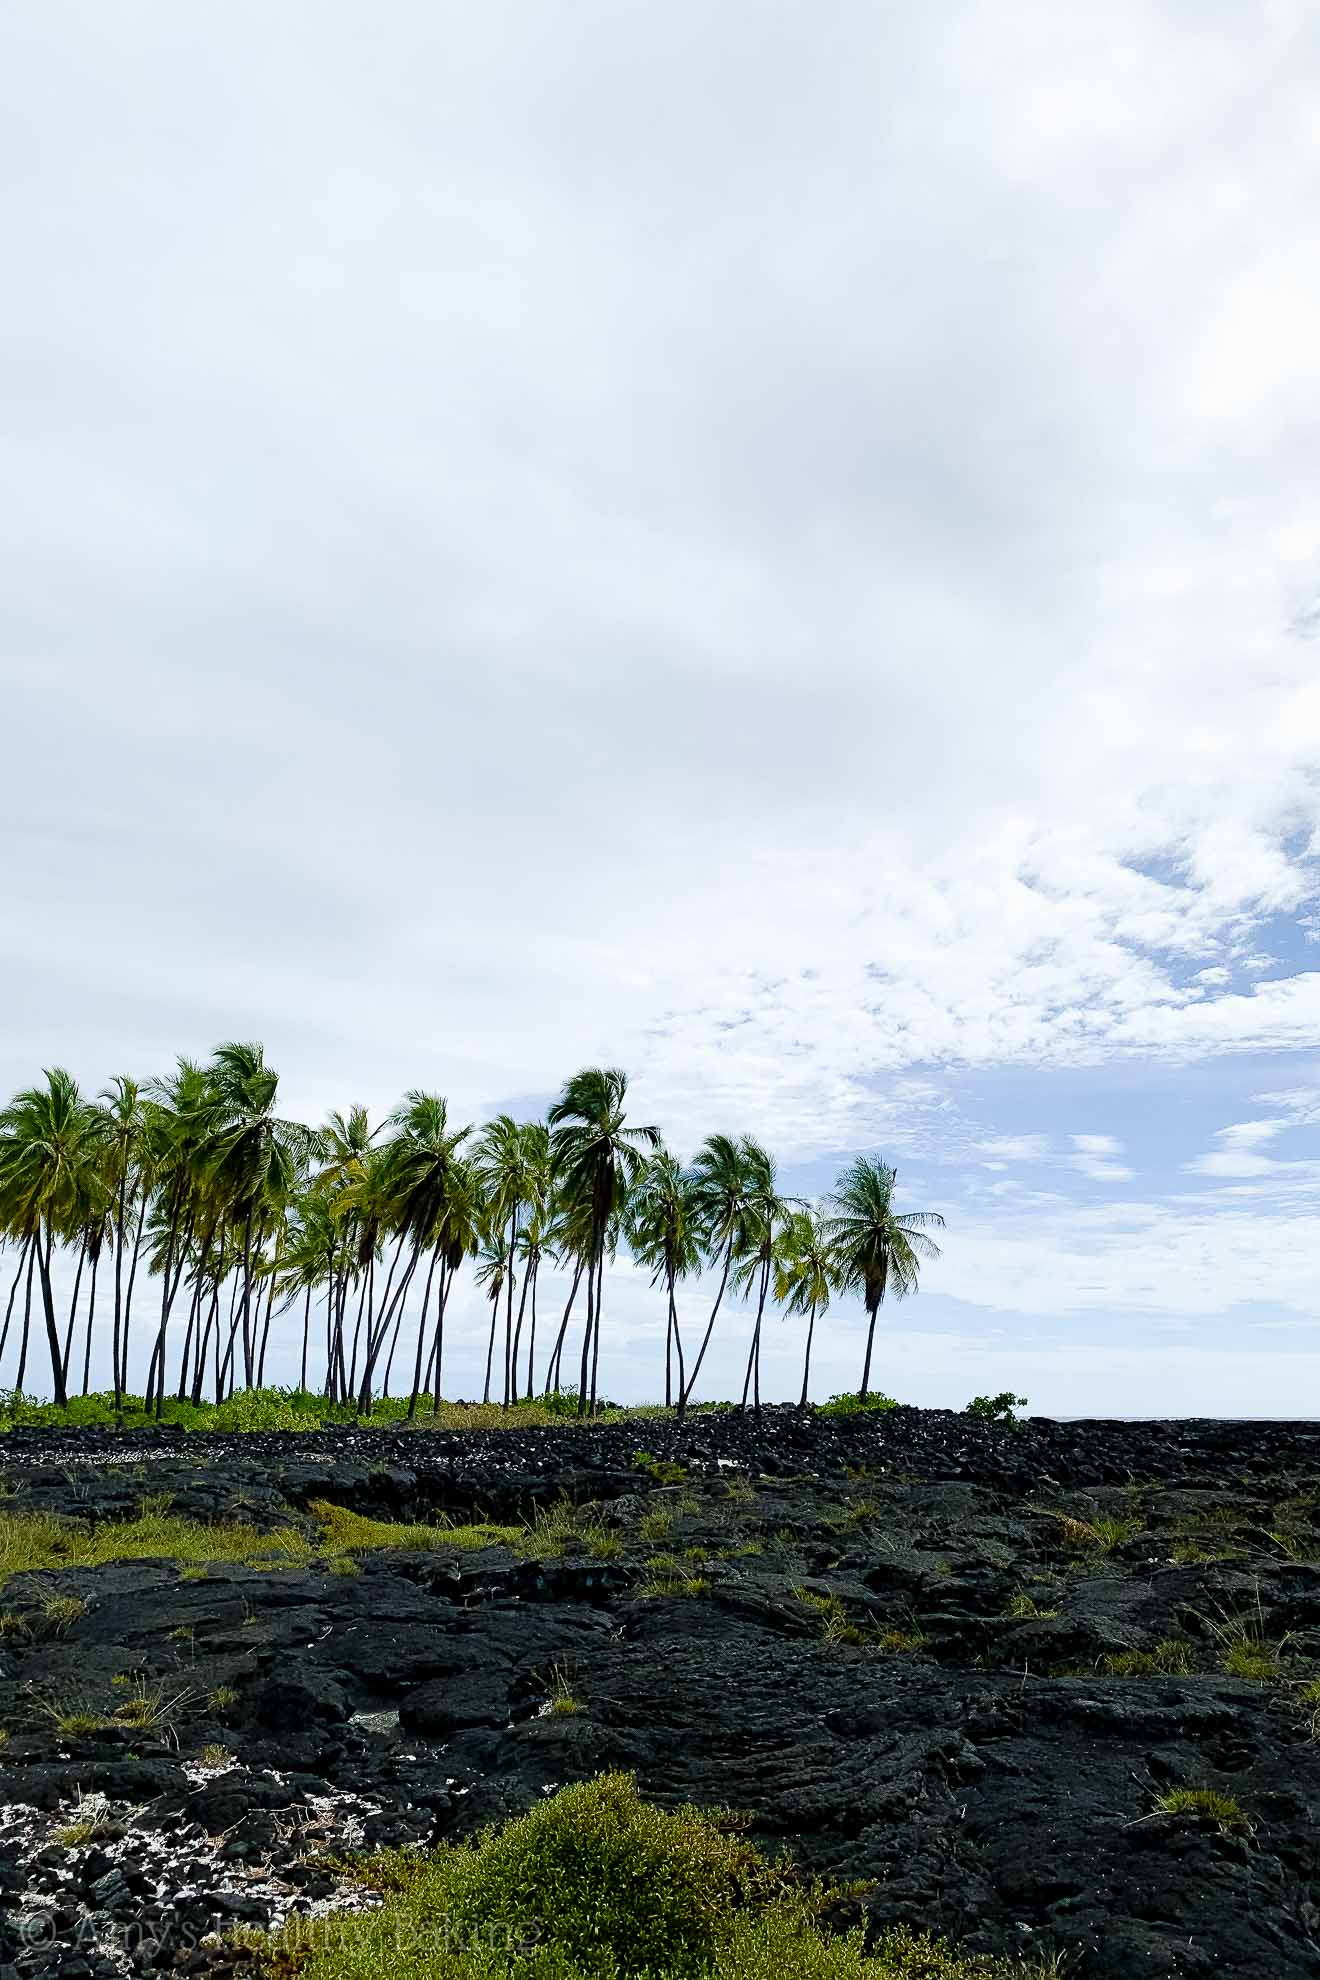 View of lava rock and palm trees at the Place of Refuge on the Big Island of Hawaii